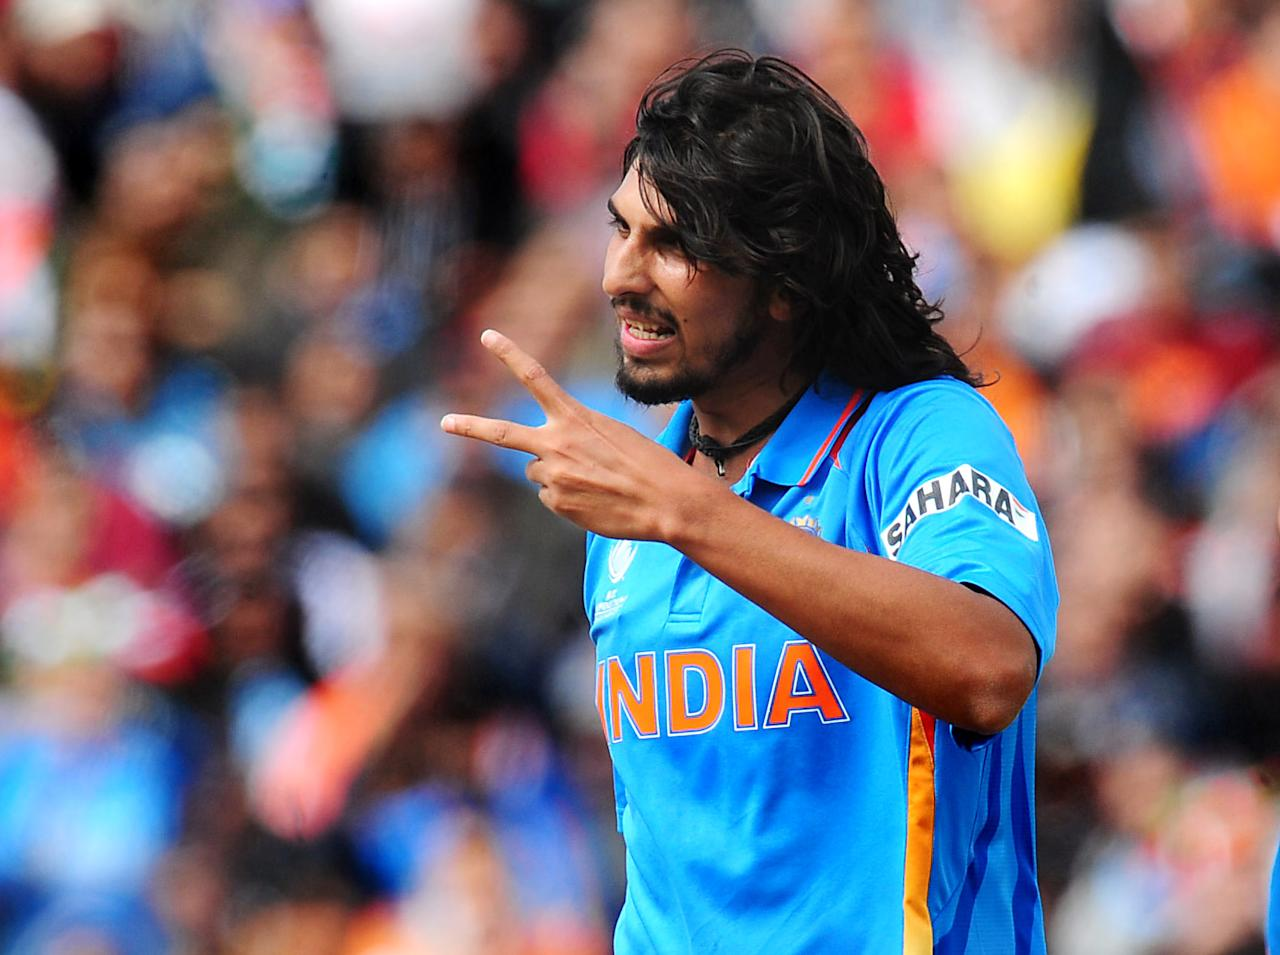 India's Ishant Sharma during the ICC Champions Trophy match at Edgbaston, Birmingham. PRESS ASSOCIATION Photo. Picture date: Saturday June 15, 2013. See PA story CRICKET India. Photo credit should read: Rui Vieira/PA Wire. RESTRICTIONS: Use subject to restrictions. Editorial use only. No commercial use. Call 44 (0)1158 447447 for further information.